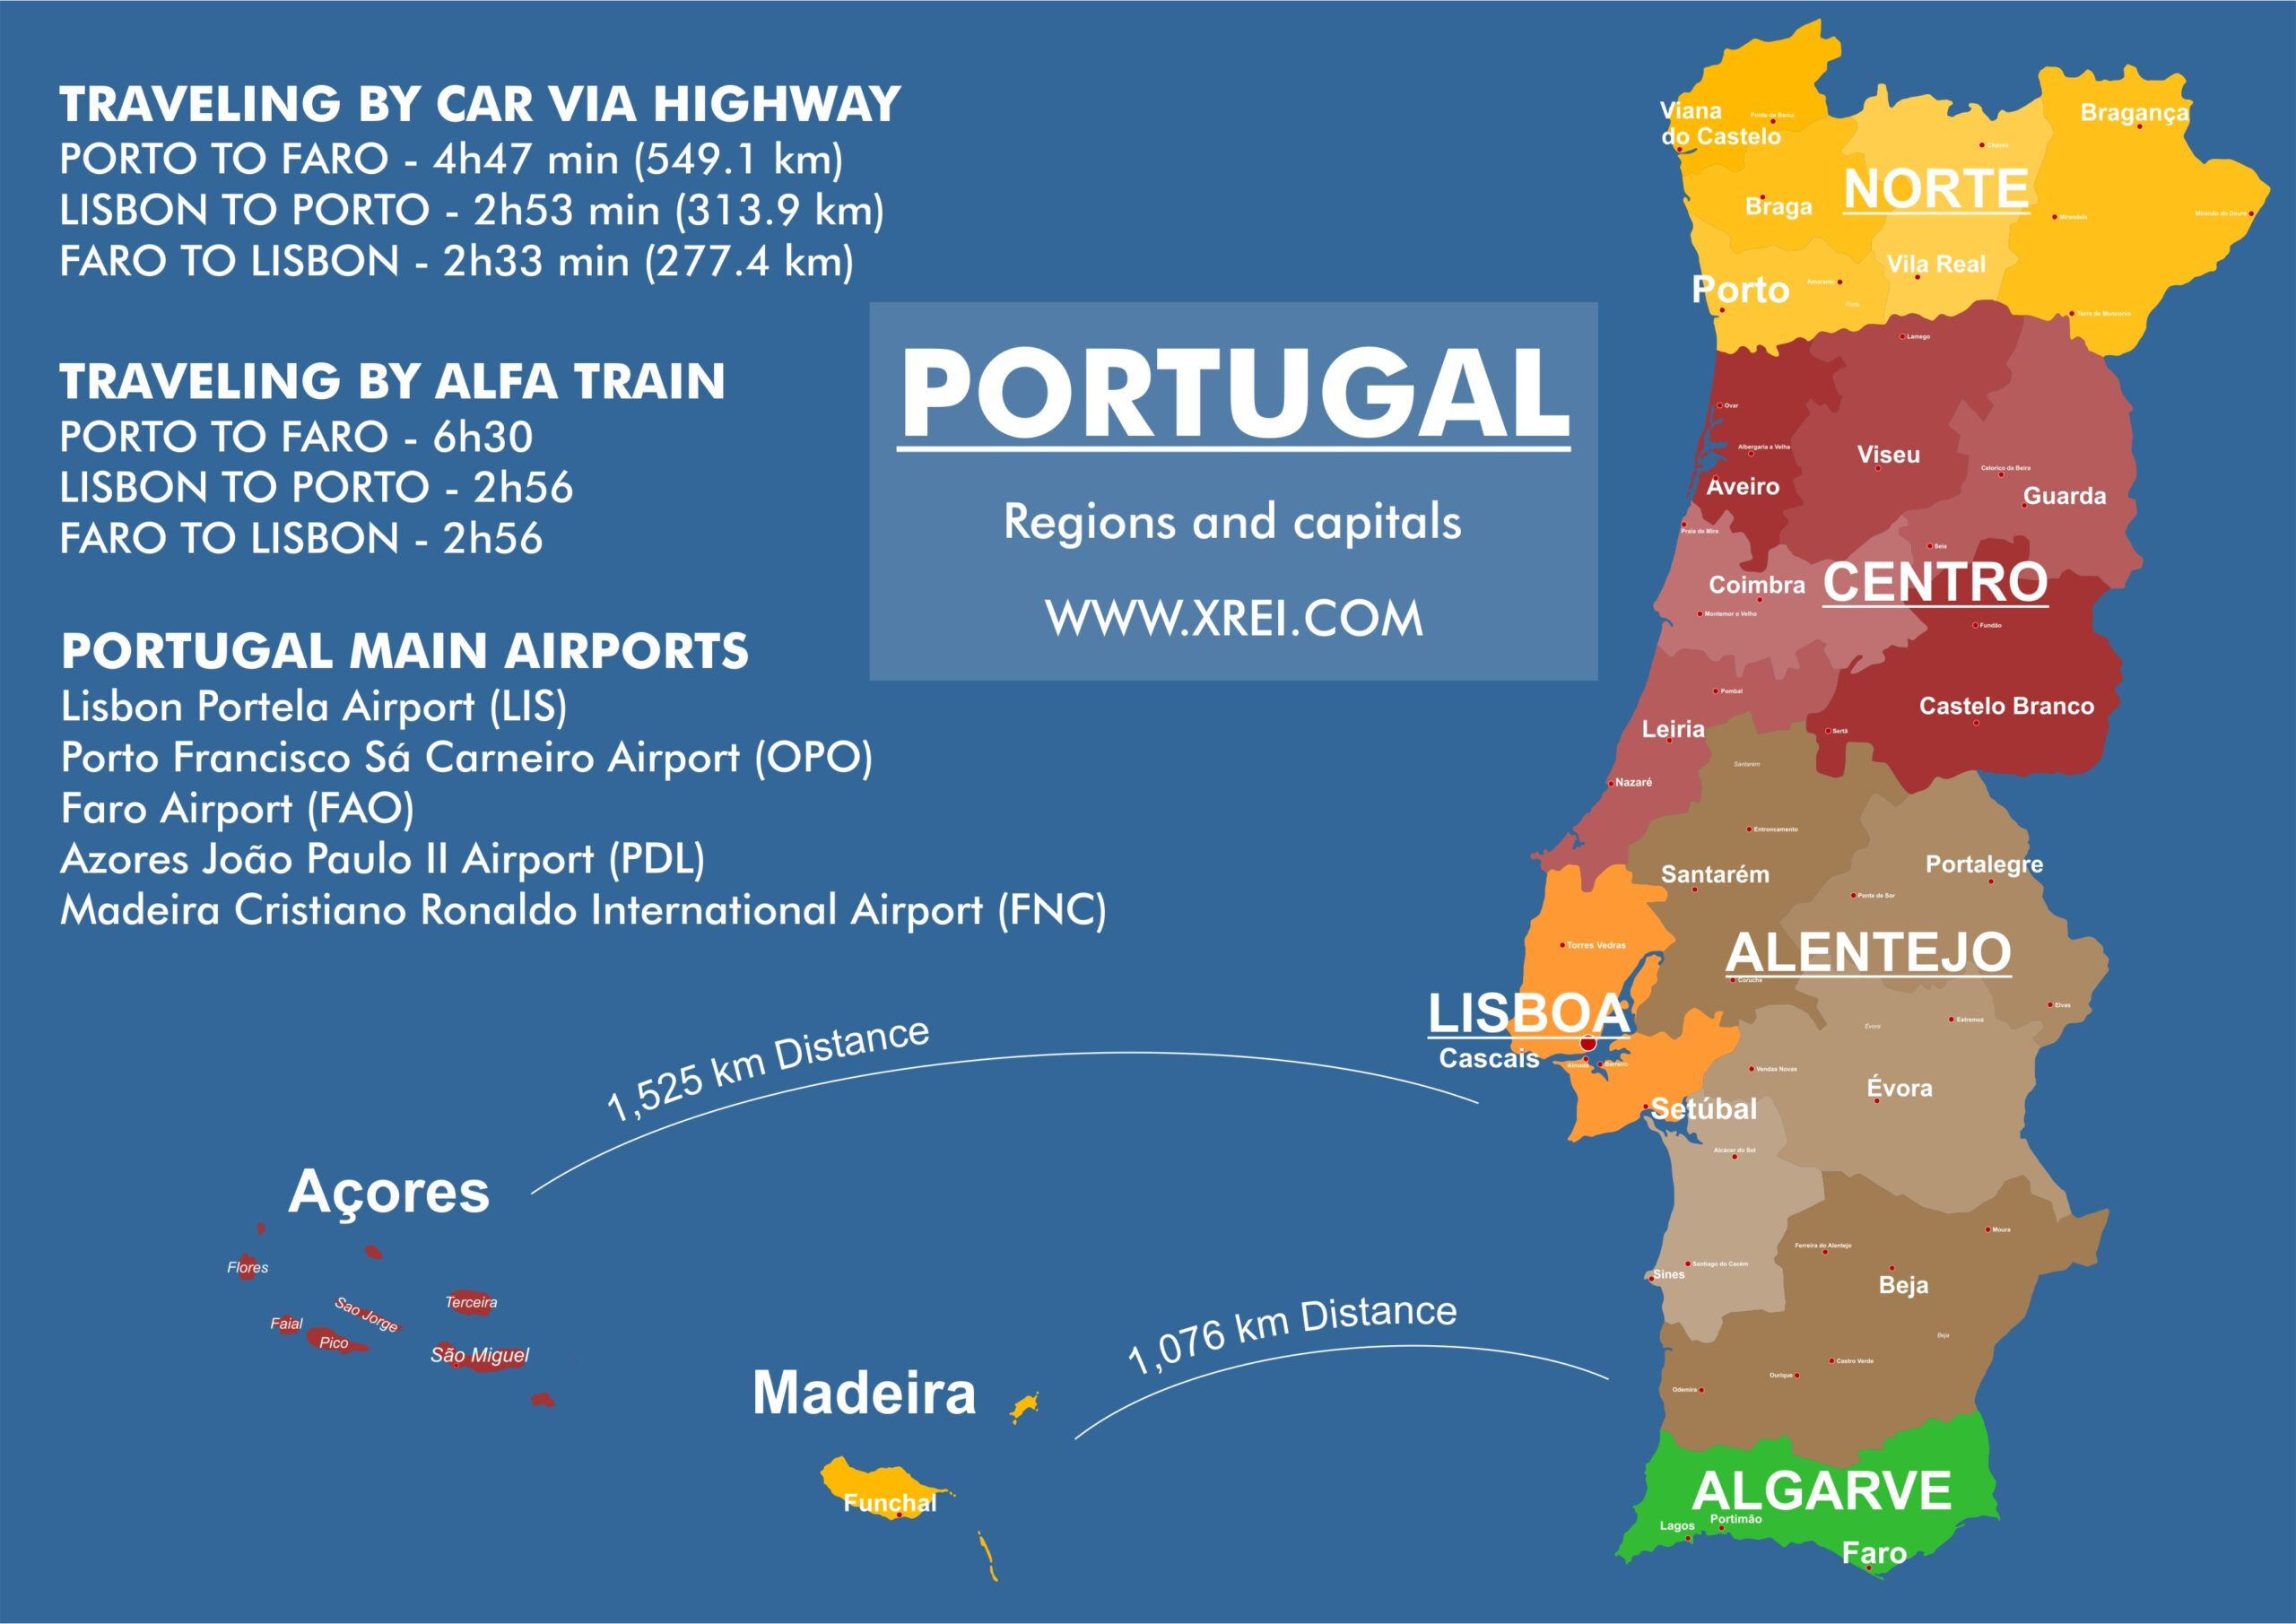 Map of the regions of Portugal, with the distance of travel time, by car and train between the main cities of the continent and the islands, and the main airports of Portugal